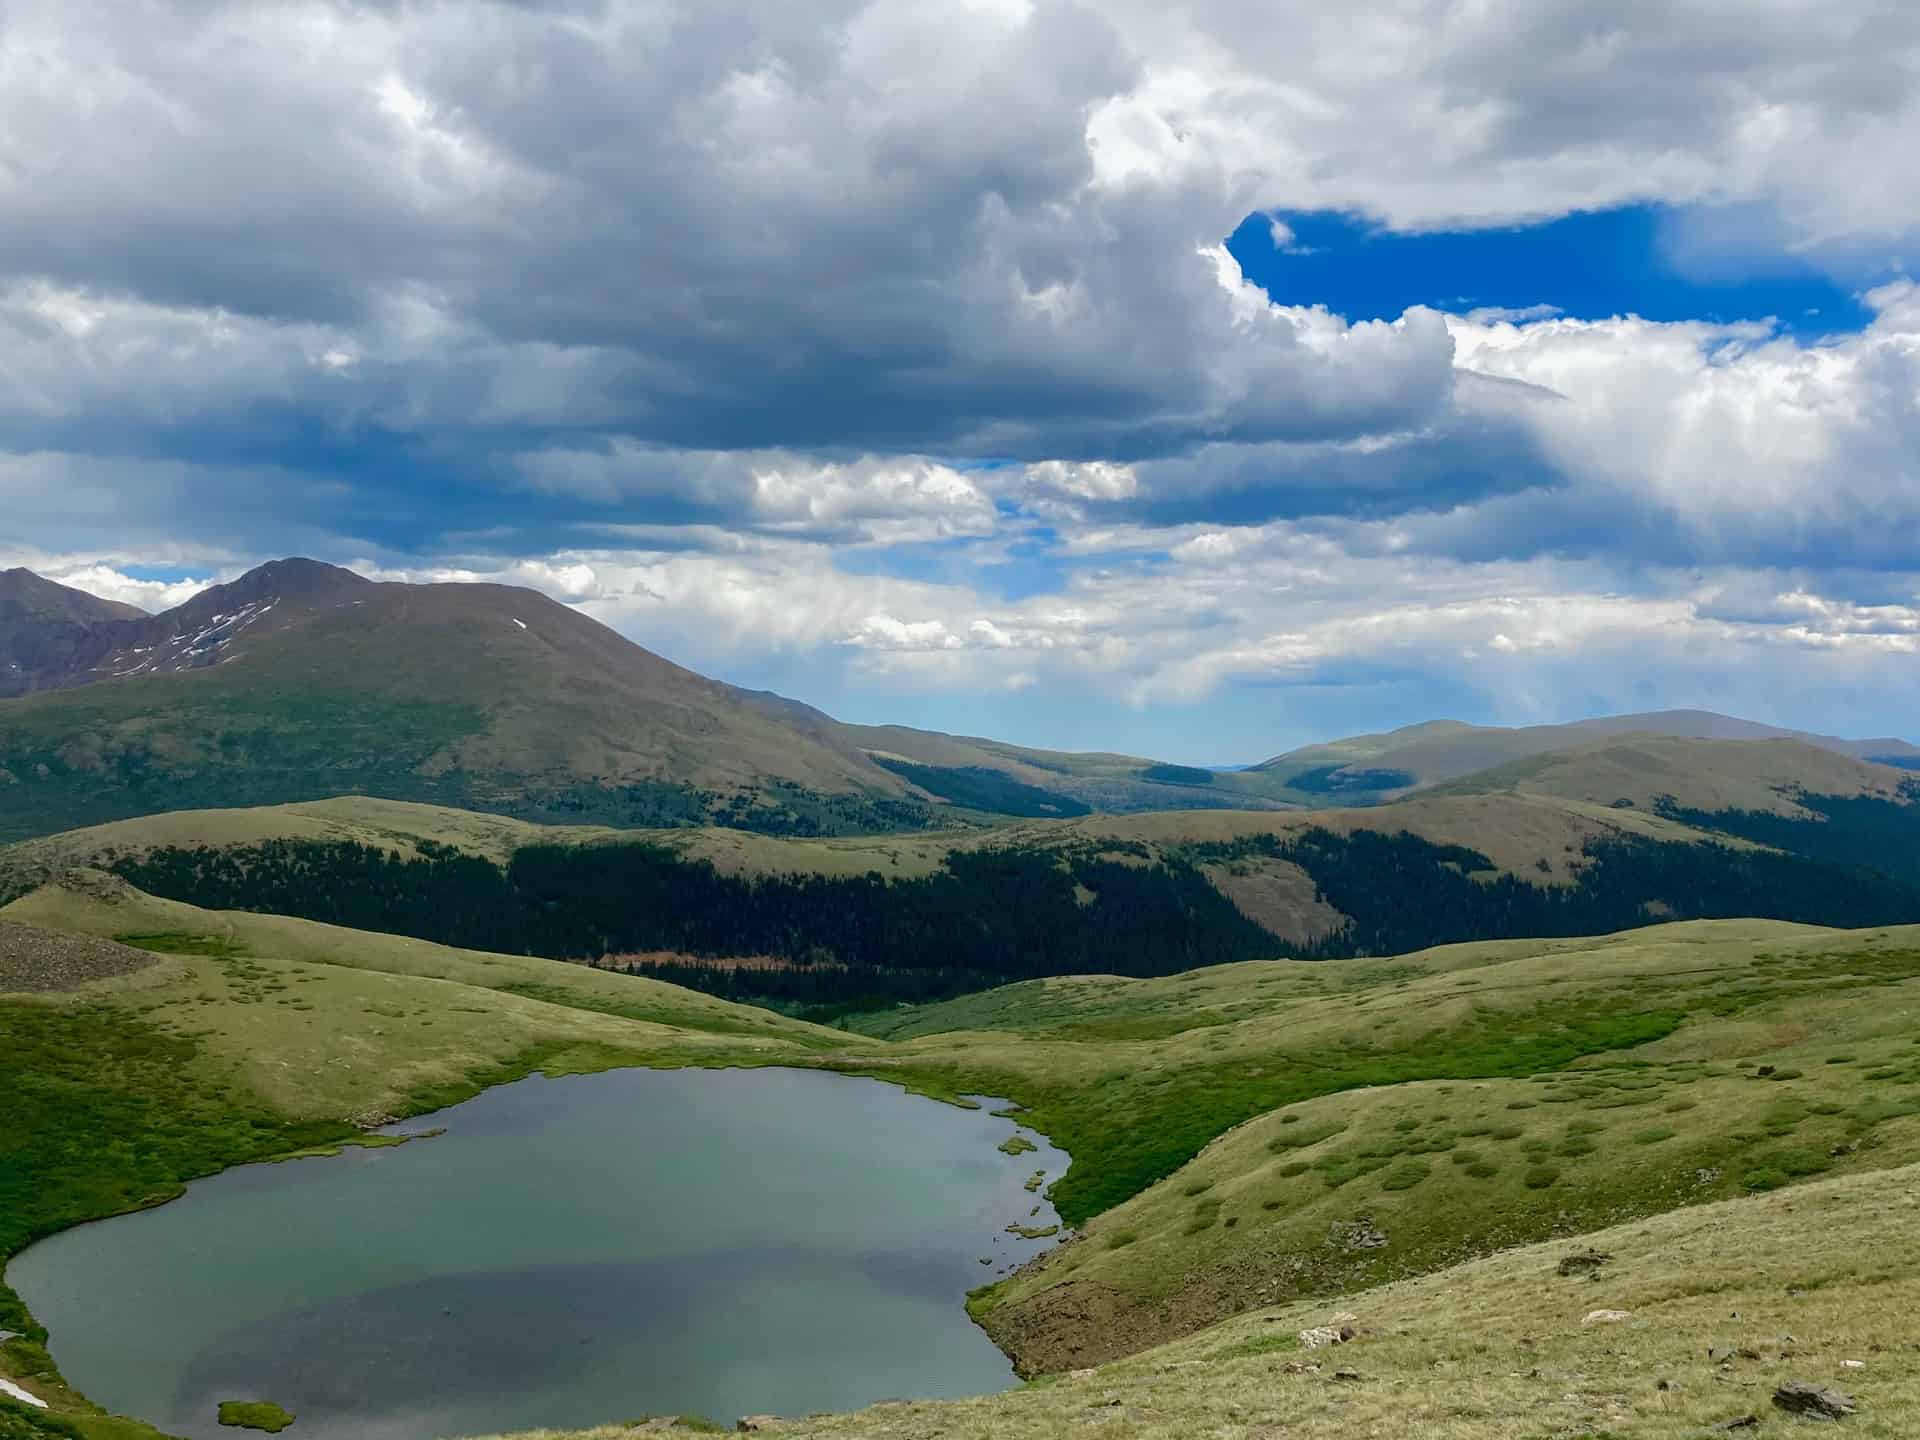 vista of Mount Bierstadt from Square Top Lakes Trail